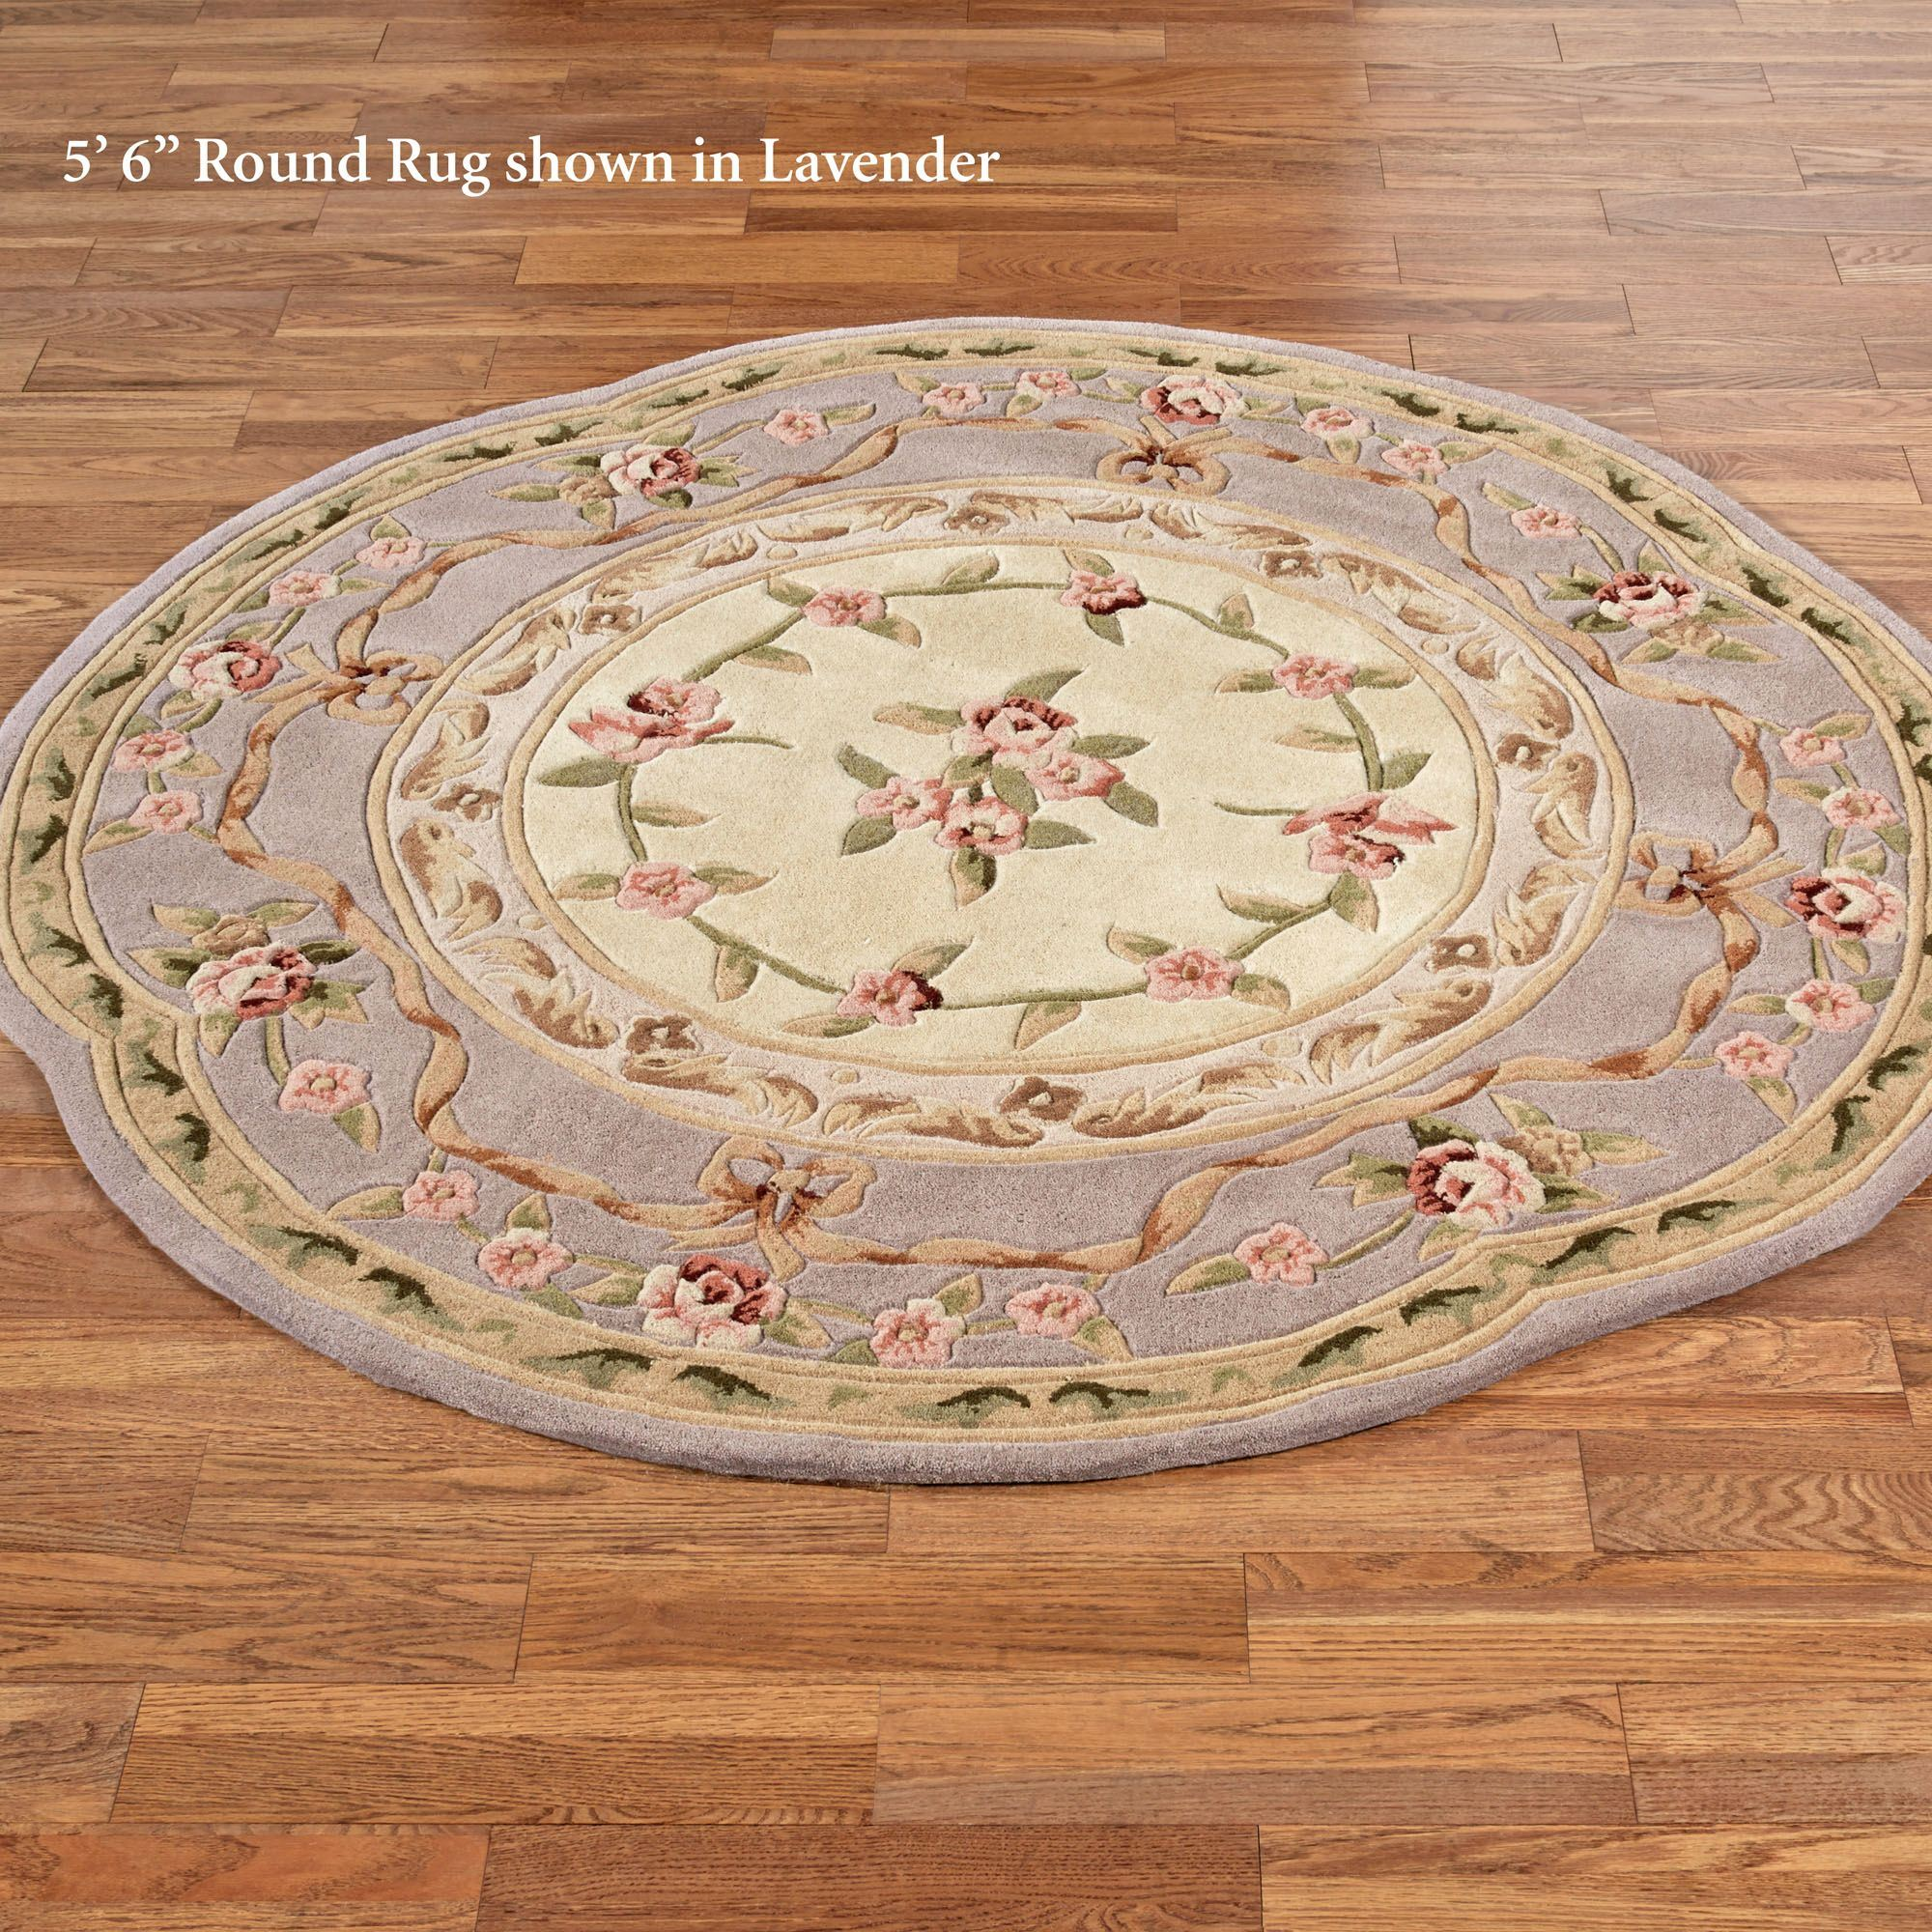 rose product antibacterial floral style living slip modern carpets woven room bedroom rugs rug anti european classical